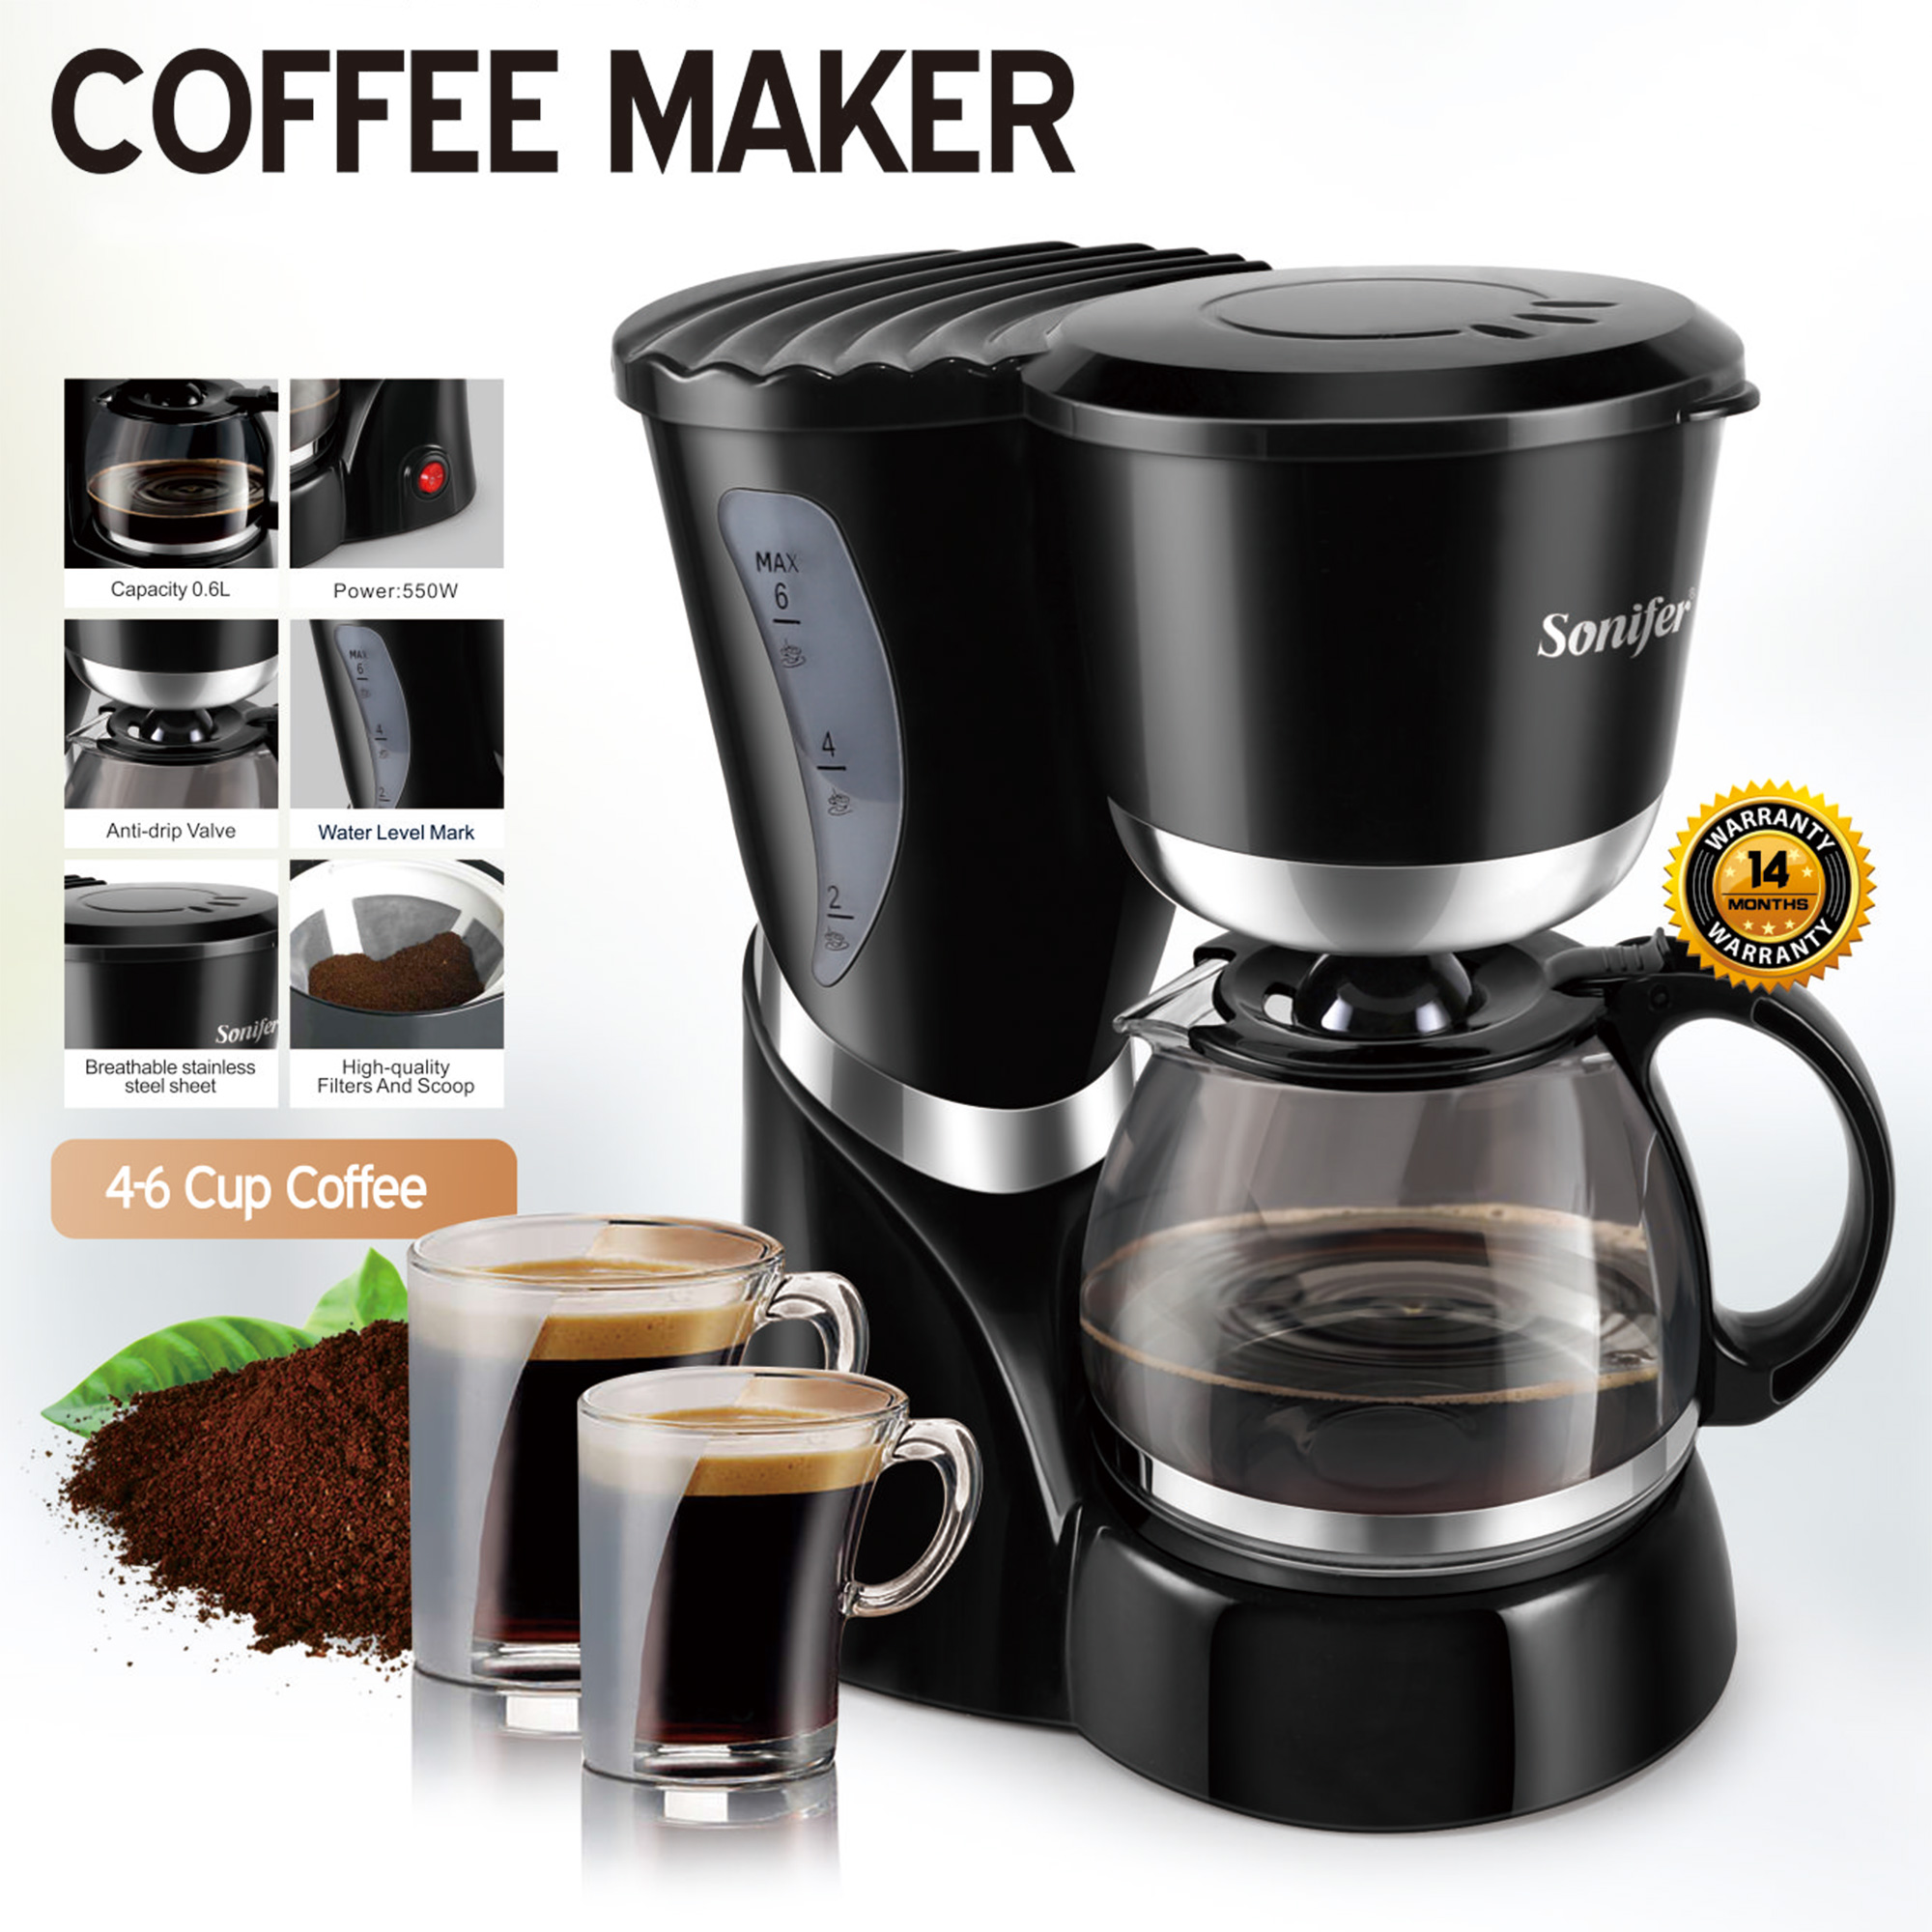 0 6l Electric Drip Coffee Maker 550w Household Coffee Machine 6 Cup Tea Coffee Pot Milk Coffee Maker For Gift 220v Sonifer Coffee Makers Aliexpress